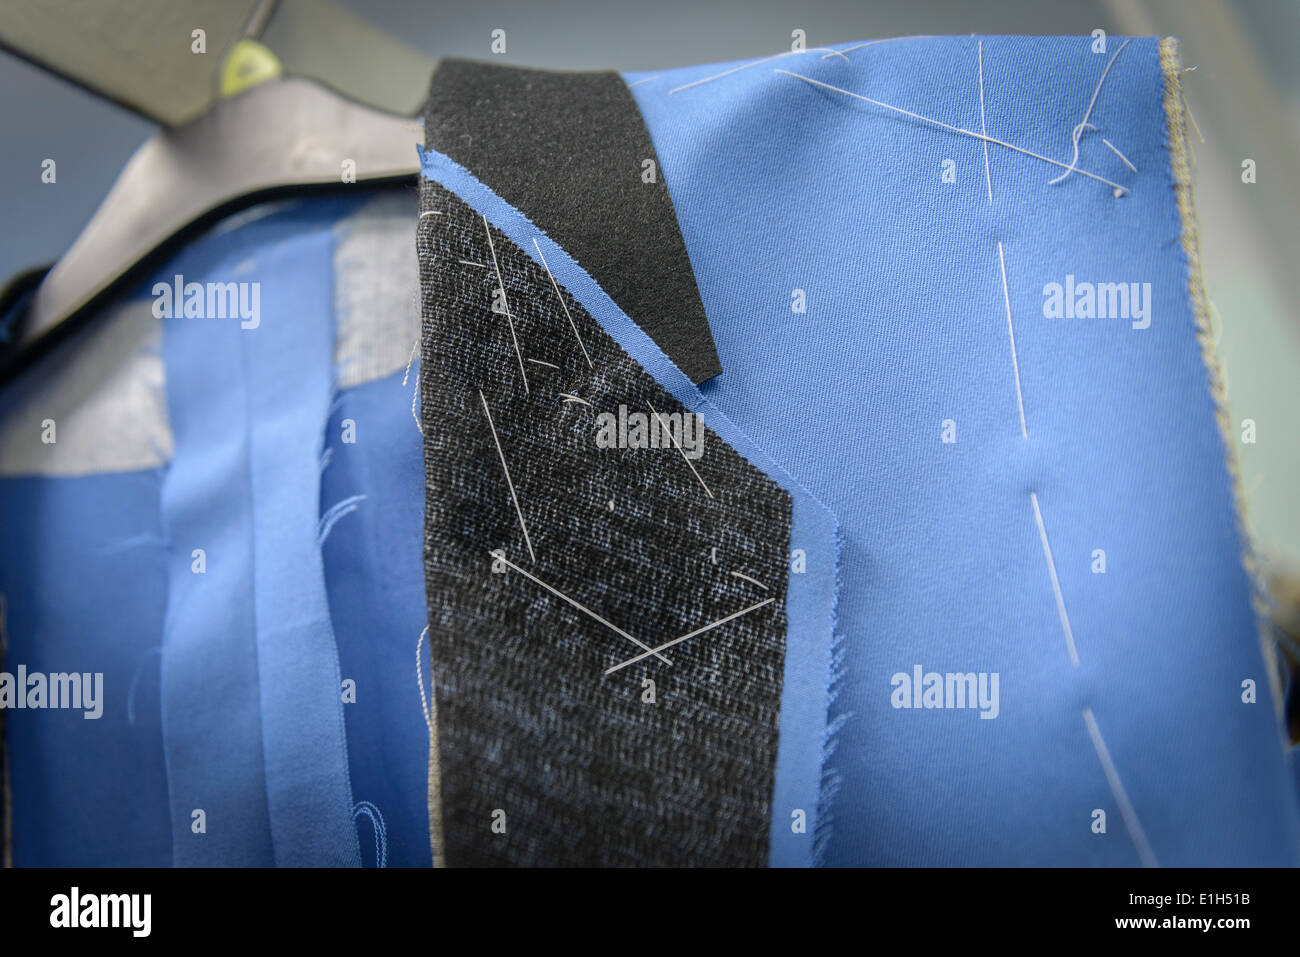 Detail of material in clothing factory, close up - Stock Image